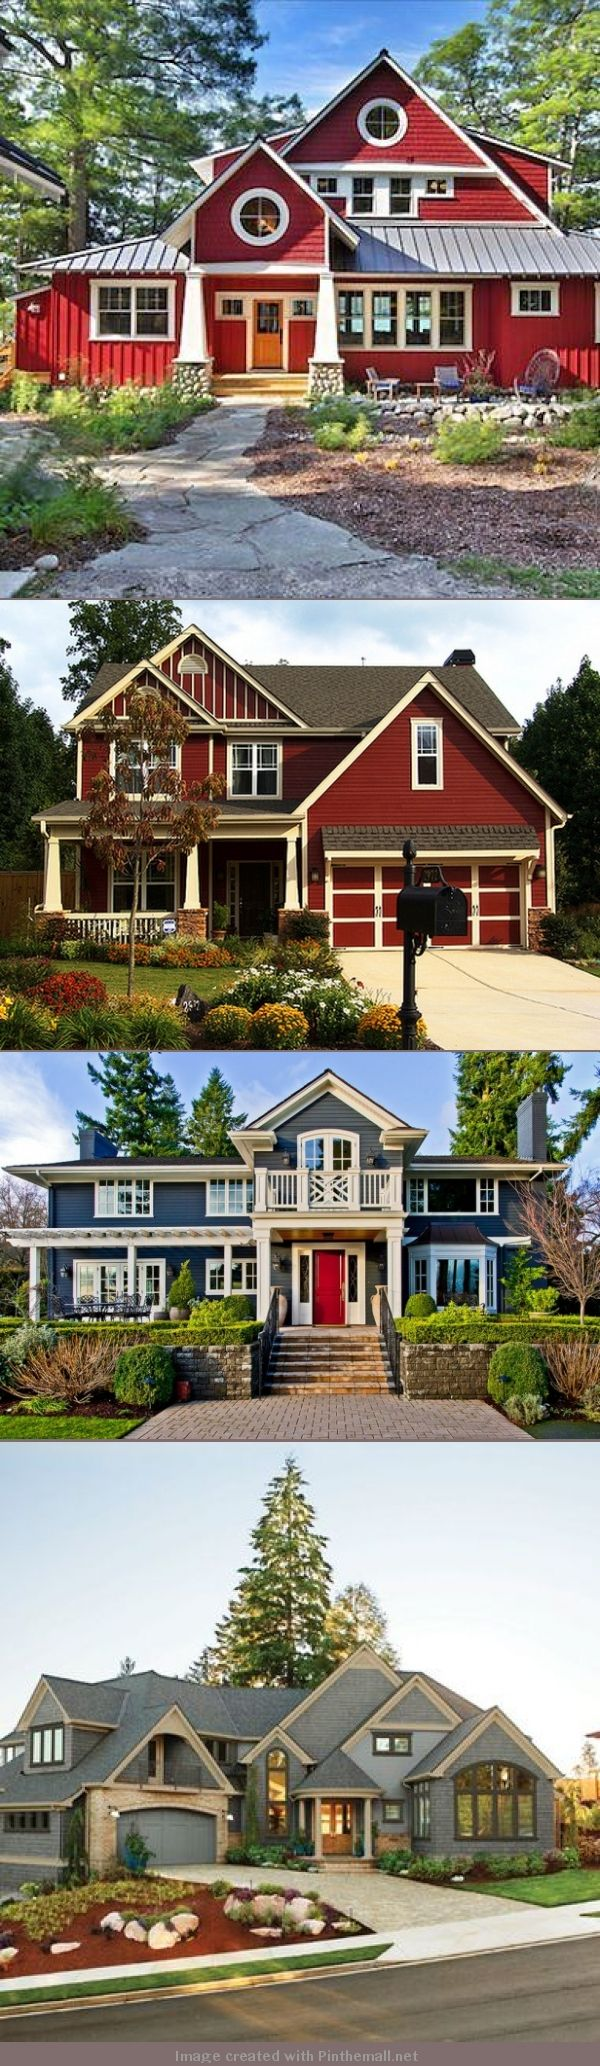 Getting your white right on the exterior of your house is critical. For a blue or red house, it's the difference between your house looking nautical or heritage.